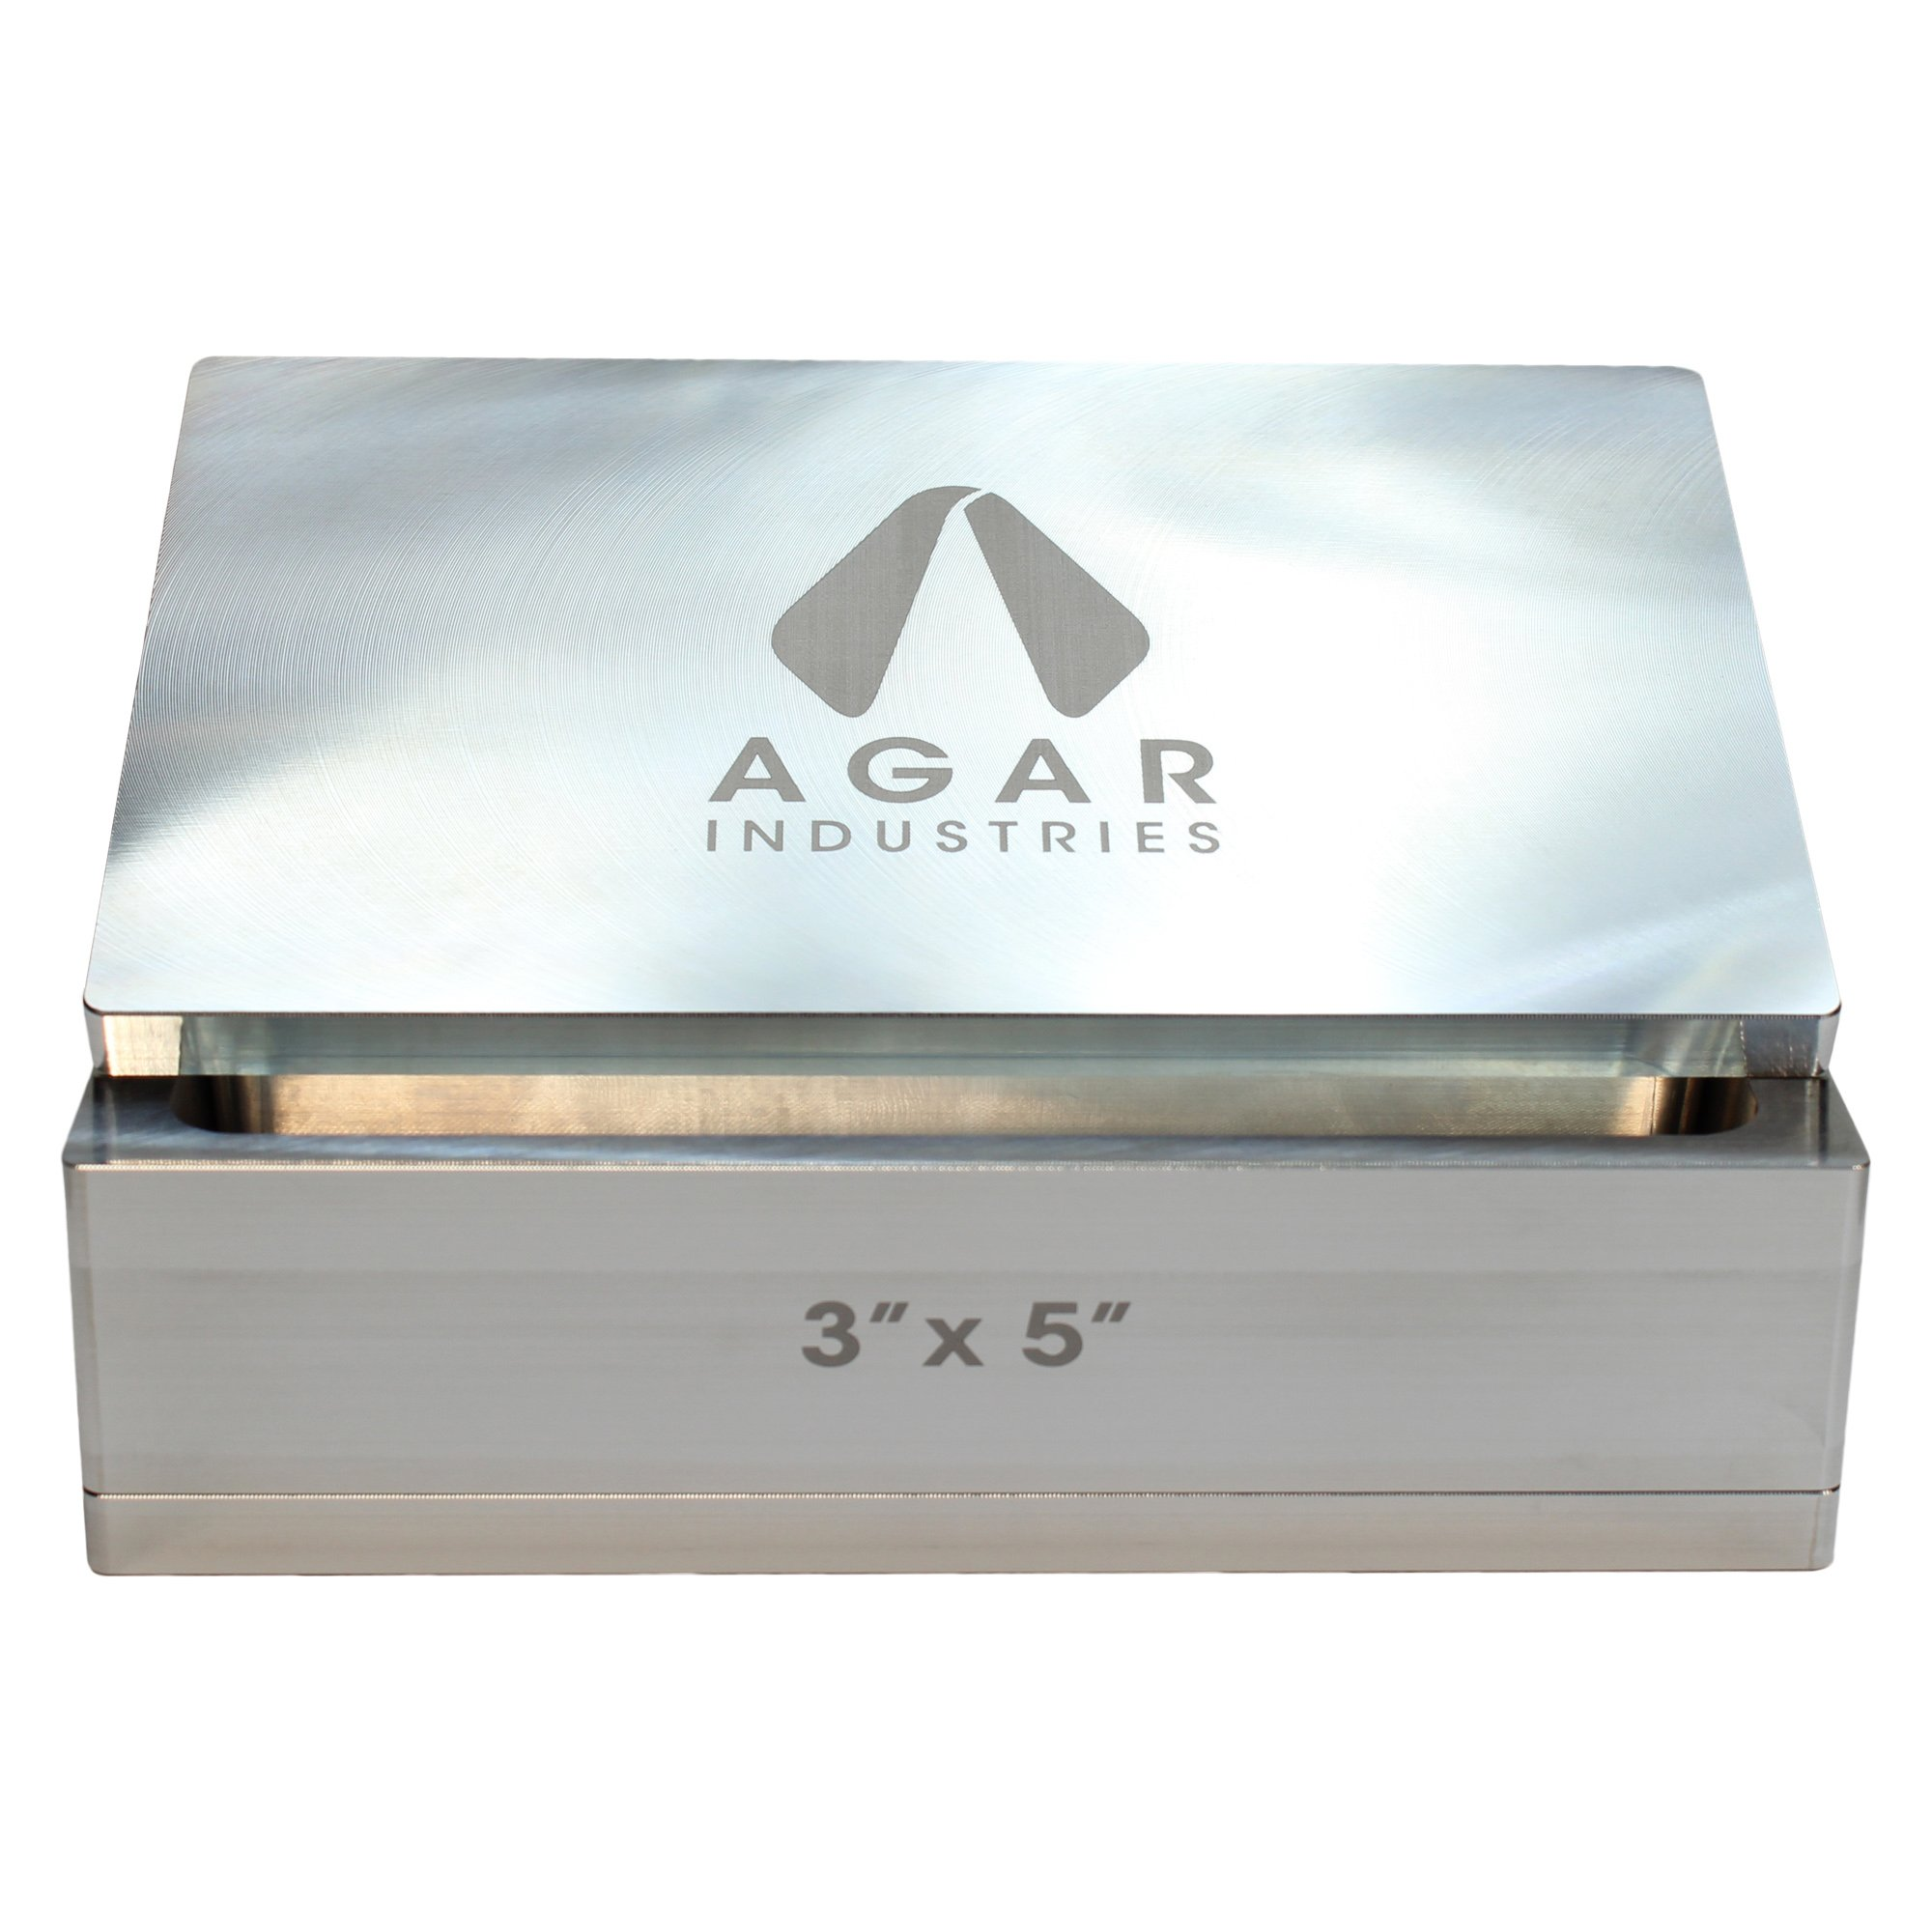 Agar Industries Rosin Pre Press Mold for DIY Solventless Extraction & Pressing - 3'' x 5'' by Agar Industries